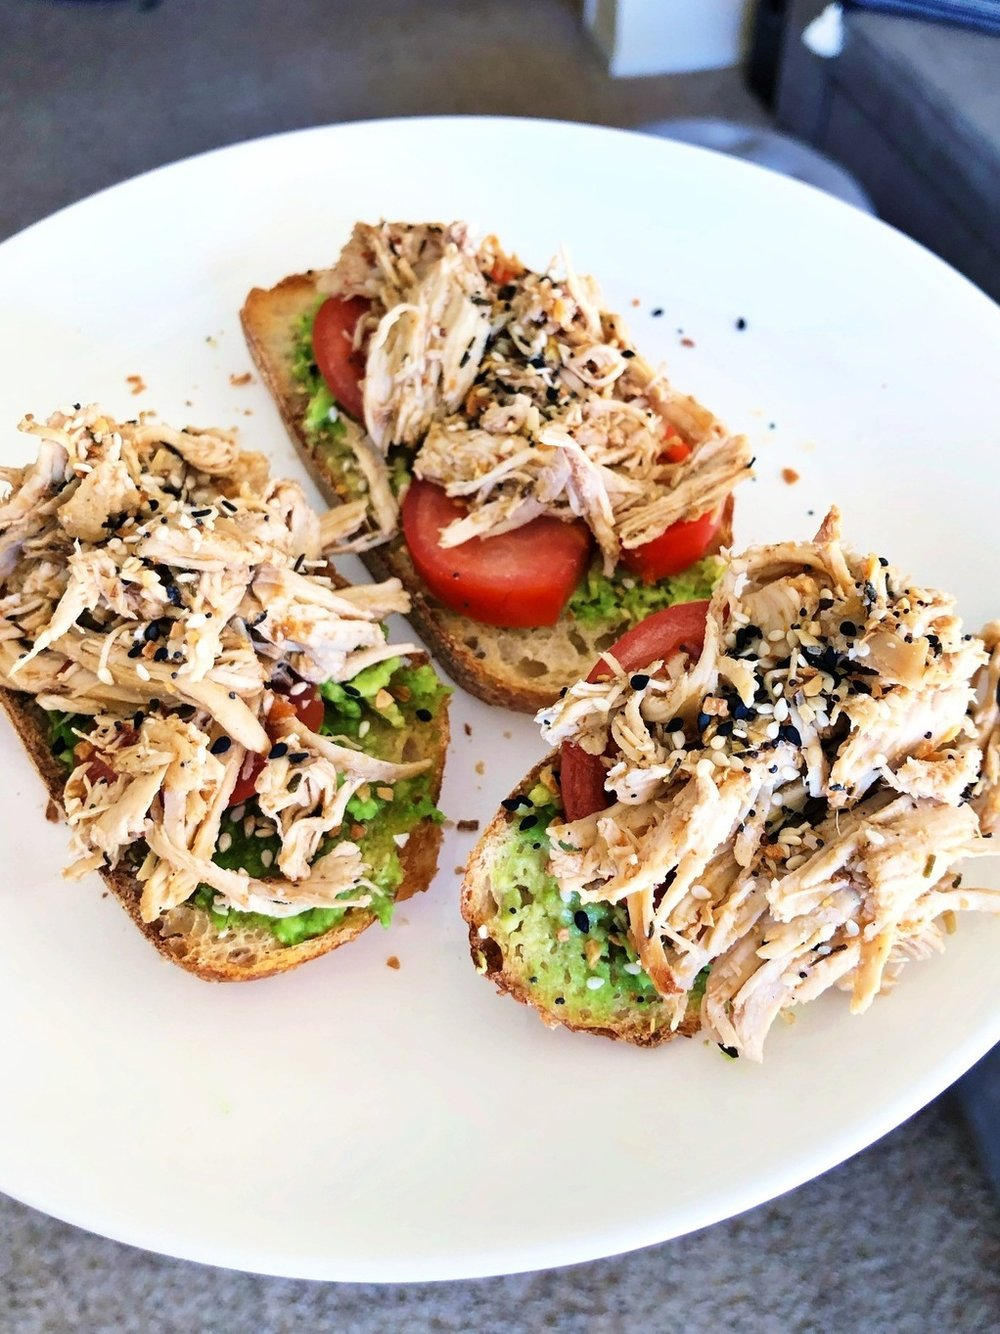 "Weekly meal prep idea. Instant Pot Salsa Shredded Chicken. This recipe is so easy, quick and tastes amazing. Sliced organic sourdough bread topped with mashed avocado, sliced tomatoes, salsa shredded chicken, and ""everything bagel"" seasoning. So freaking good!!"